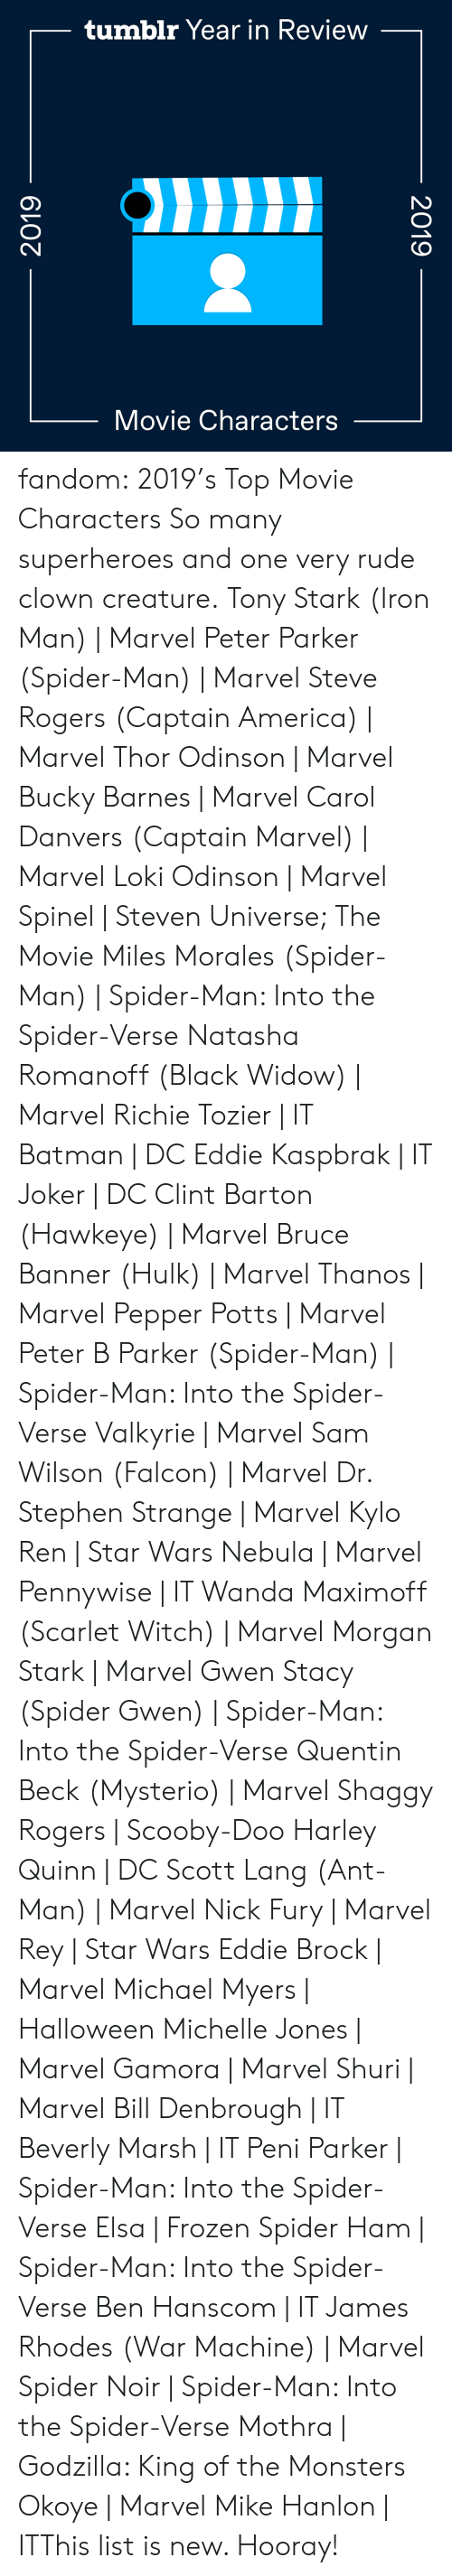 ben: tumblr Year in Review  Movie Characters  2019  2019 fandom:  2019's Top Movie Characters  So many superheroes and one very rude clown creature.  Tony Stark (Iron Man) | Marvel  Peter Parker (Spider-Man) | Marvel  Steve Rogers (Captain America) | Marvel  Thor Odinson | Marvel  Bucky Barnes | Marvel  Carol Danvers (Captain Marvel) | Marvel  Loki Odinson | Marvel  Spinel | Steven Universe; The Movie  Miles Morales (Spider-Man) | Spider-Man: Into the Spider-Verse  Natasha Romanoff (Black Widow) | Marvel  Richie Tozier | IT  Batman | DC  Eddie Kaspbrak | IT  Joker | DC  Clint Barton (Hawkeye) | Marvel  Bruce Banner (Hulk) | Marvel  Thanos | Marvel  Pepper Potts | Marvel  Peter B Parker (Spider-Man) | Spider-Man: Into the Spider-Verse  Valkyrie | Marvel  Sam Wilson (Falcon) | Marvel  Dr. Stephen Strange | Marvel  Kylo Ren | Star Wars  Nebula | Marvel  Pennywise | IT  Wanda Maximoff (Scarlet Witch) | Marvel  Morgan Stark | Marvel  Gwen Stacy (Spider Gwen) | Spider-Man: Into the Spider-Verse  Quentin Beck (Mysterio) | Marvel  Shaggy Rogers | Scooby-Doo  Harley Quinn | DC  Scott Lang (Ant-Man) | Marvel  Nick Fury | Marvel  Rey | Star Wars  Eddie Brock | Marvel  Michael Myers | Halloween  Michelle Jones | Marvel  Gamora | Marvel  Shuri | Marvel  Bill Denbrough | IT  Beverly Marsh | IT  Peni Parker | Spider-Man: Into the Spider-Verse  Elsa | Frozen  Spider Ham | Spider-Man: Into the Spider-Verse  Ben Hanscom | IT  James Rhodes (War Machine) | Marvel  Spider Noir | Spider-Man: Into the Spider-Verse  Mothra | Godzilla: King of the Monsters  Okoye | Marvel Mike Hanlon | ITThis list is new. Hooray!